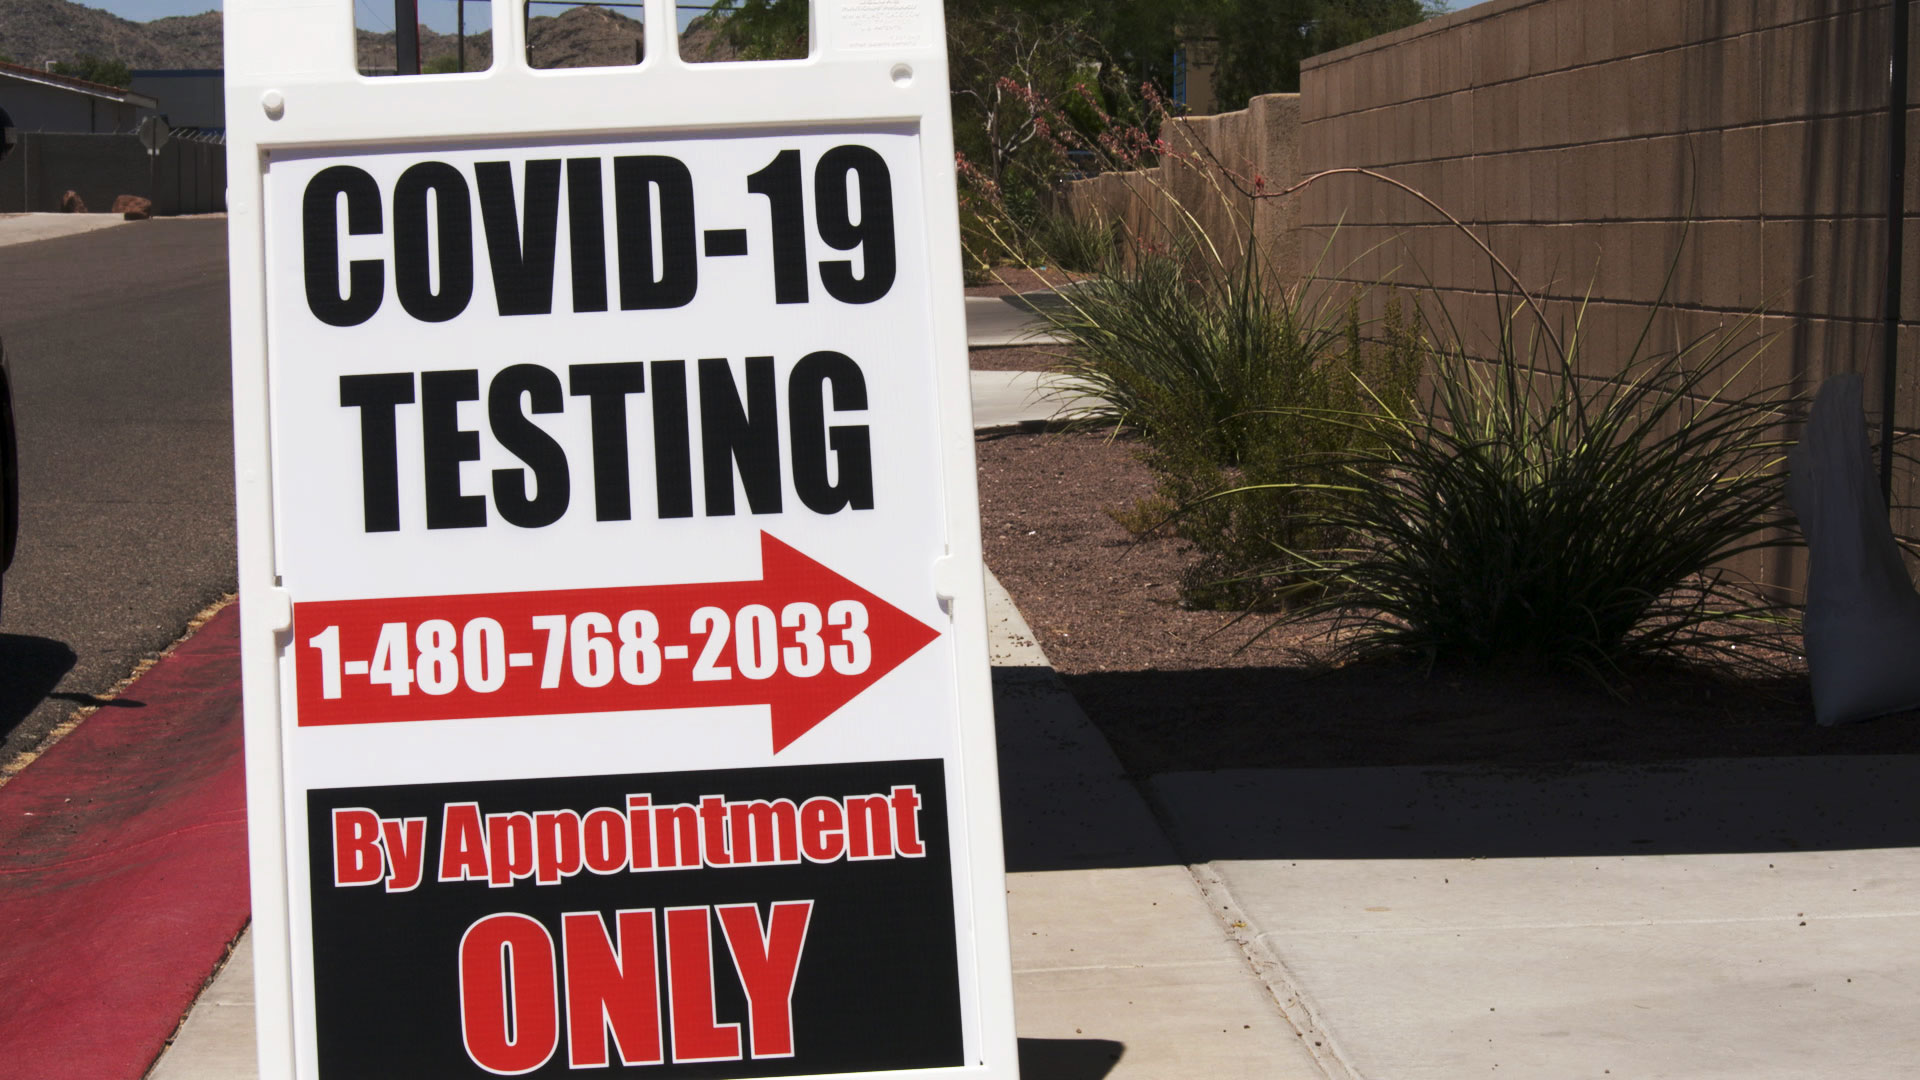 A sign advertises COVID-19 testing in the town of Guadalupe on July 7, 2020.